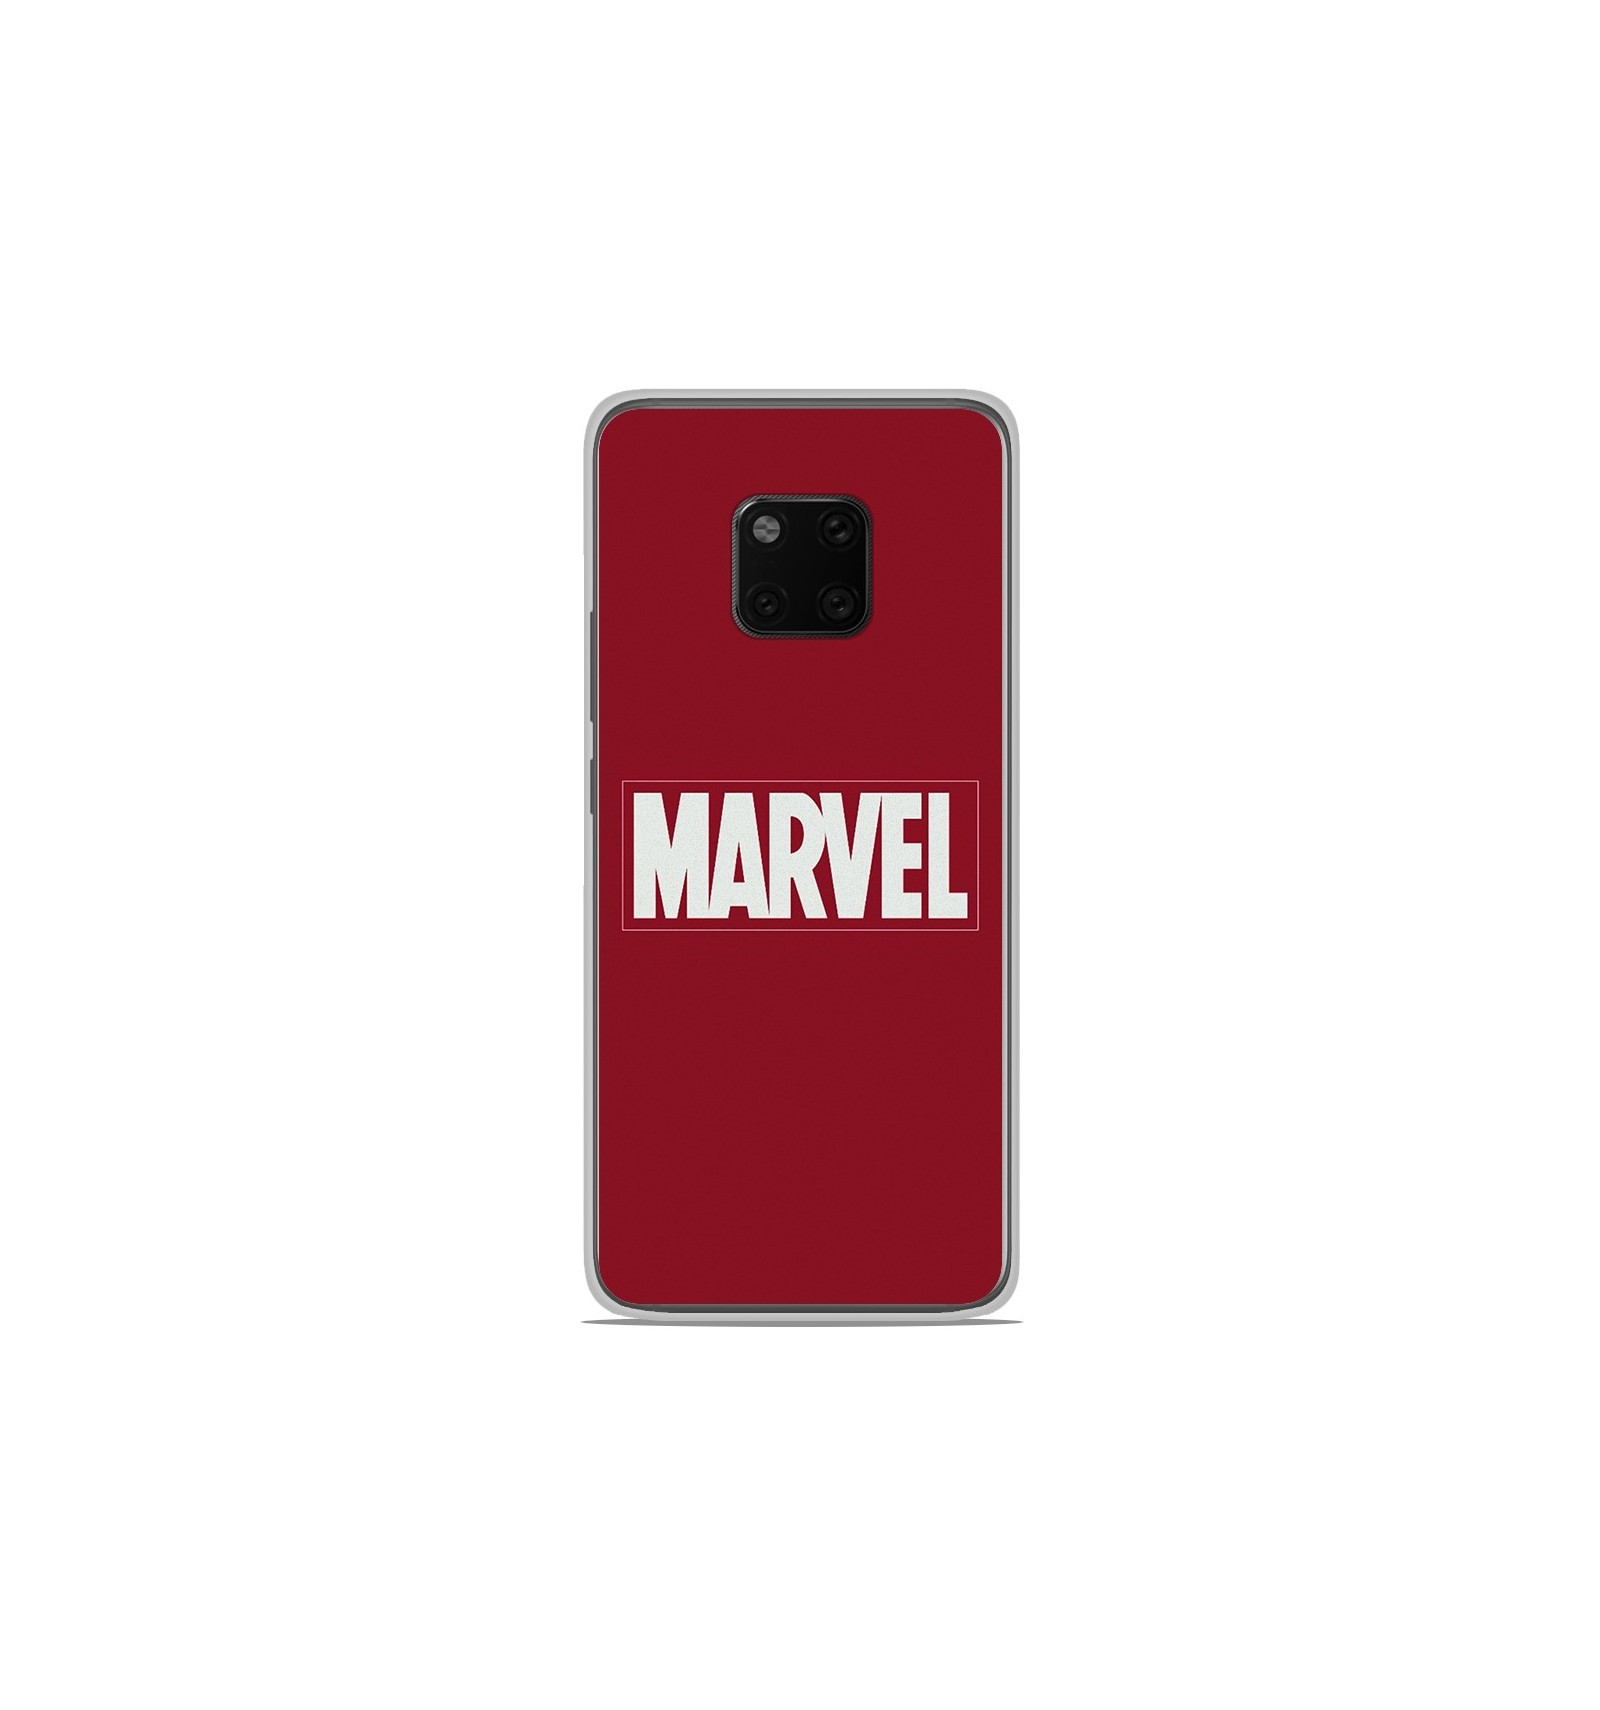 Coque en silicone Huawei Mate 20 Pro - Marvel